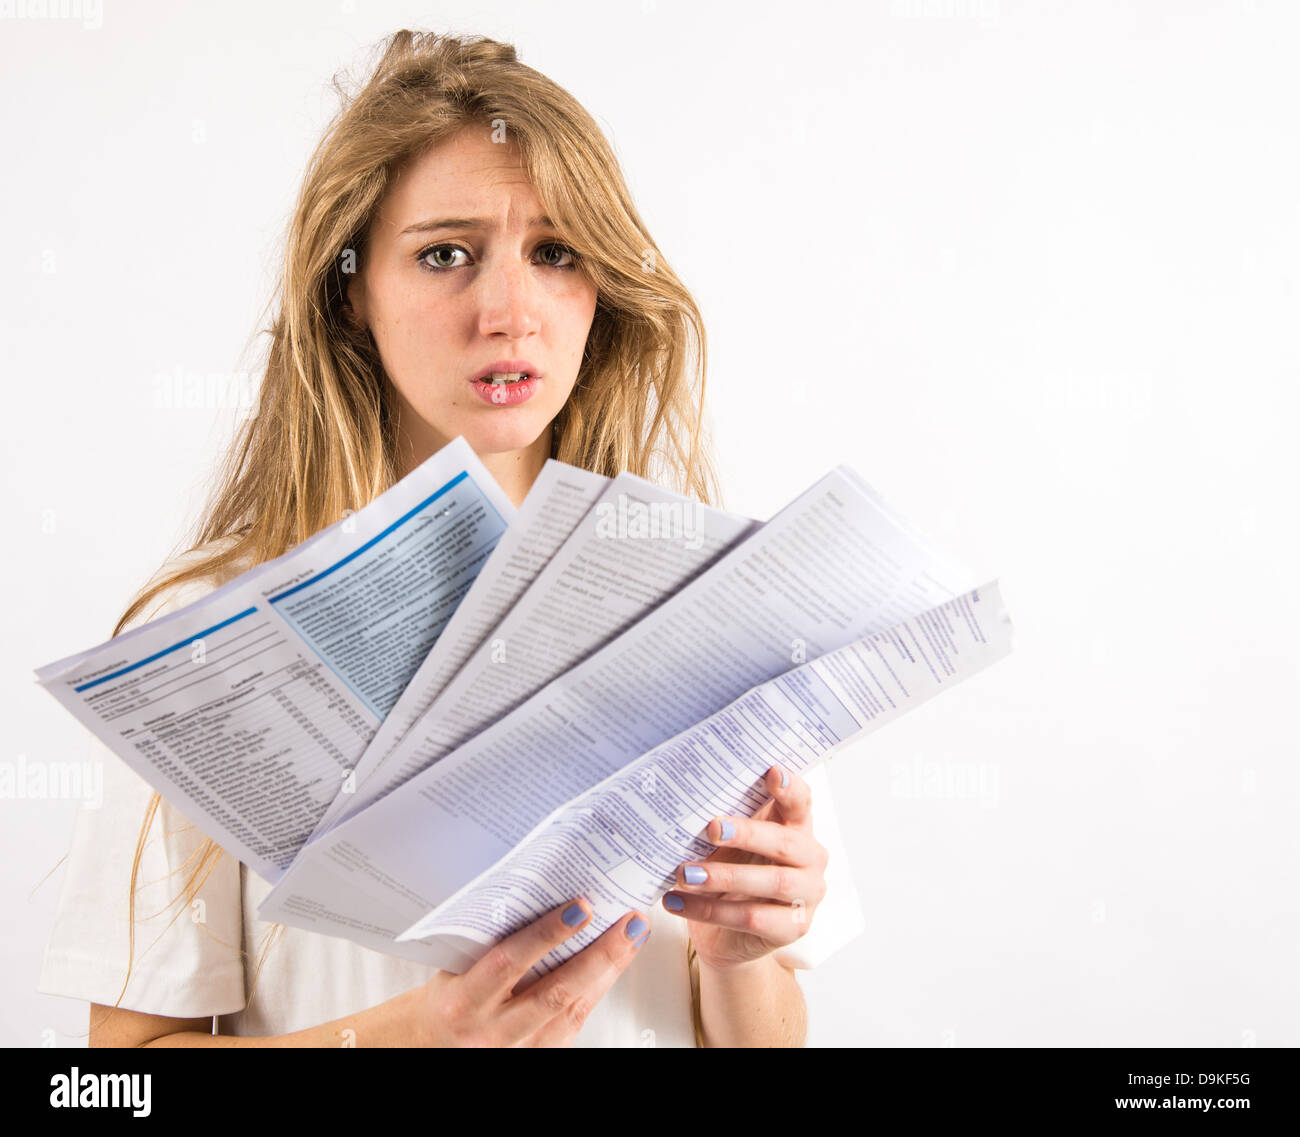 A young woman with long blonde hair worried about paying her household utility bills - Stock Image